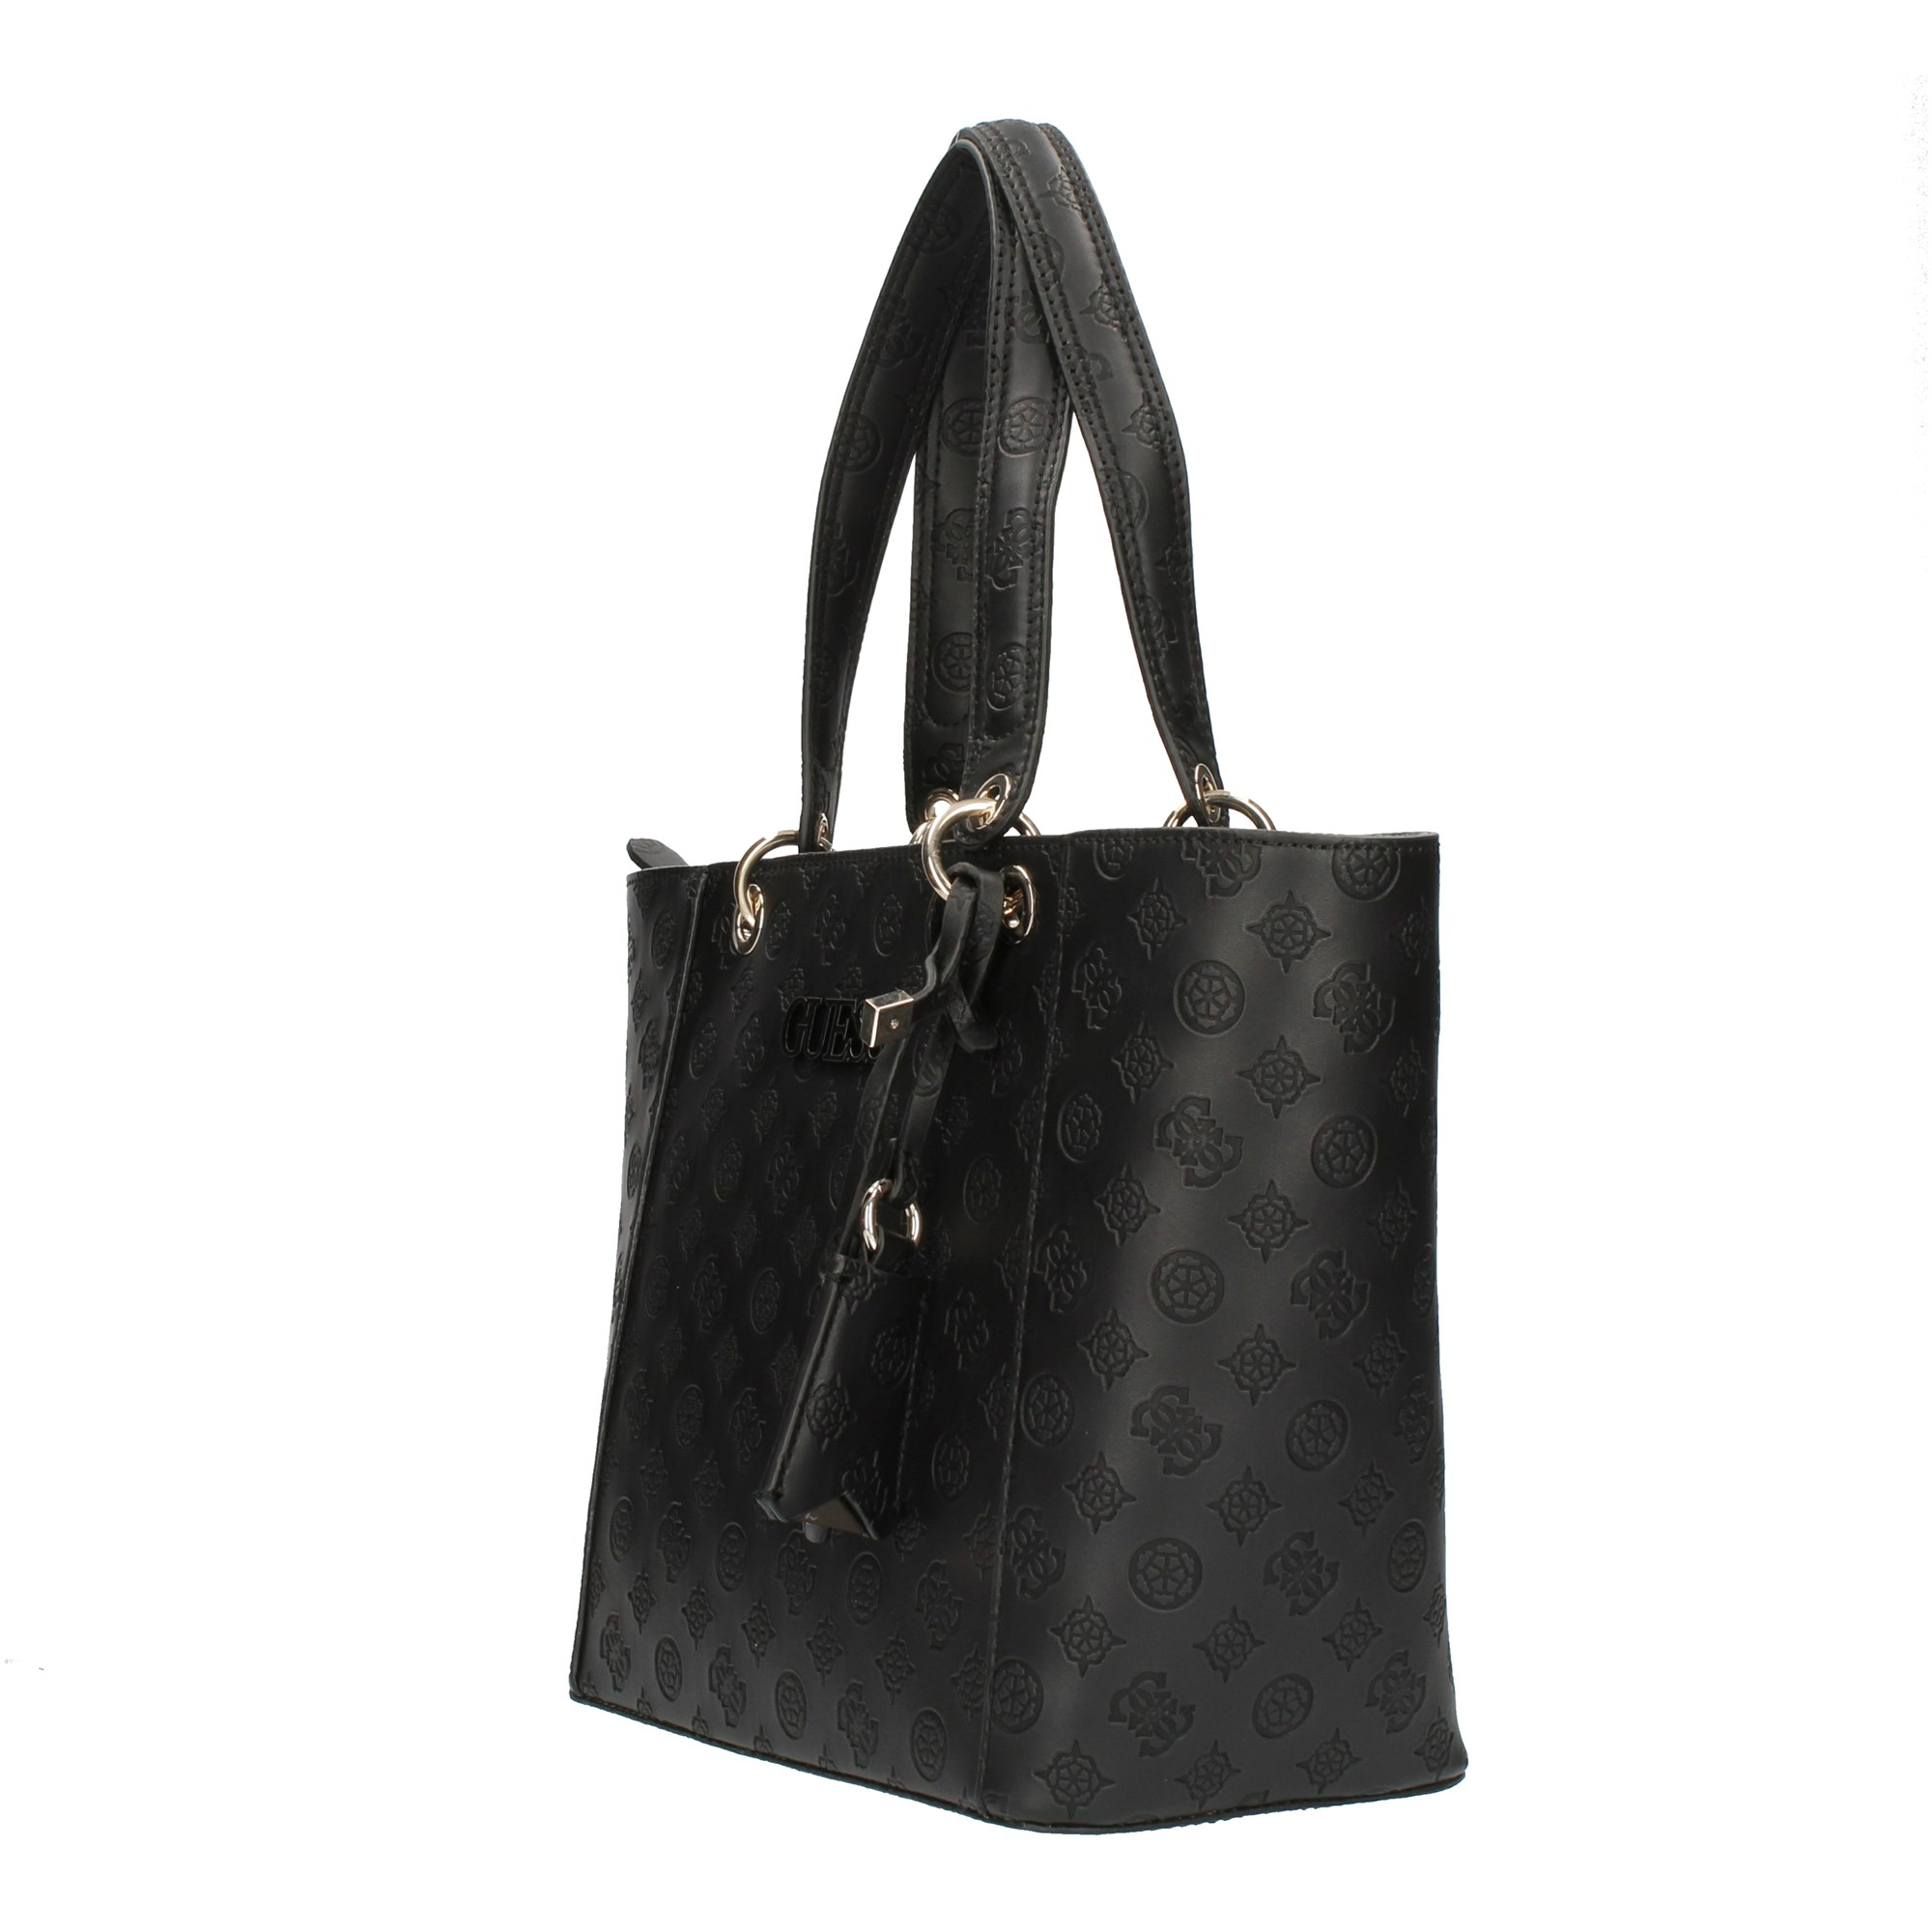 Guess Kamryn Shopping Bag Black Borse Italia Saldi